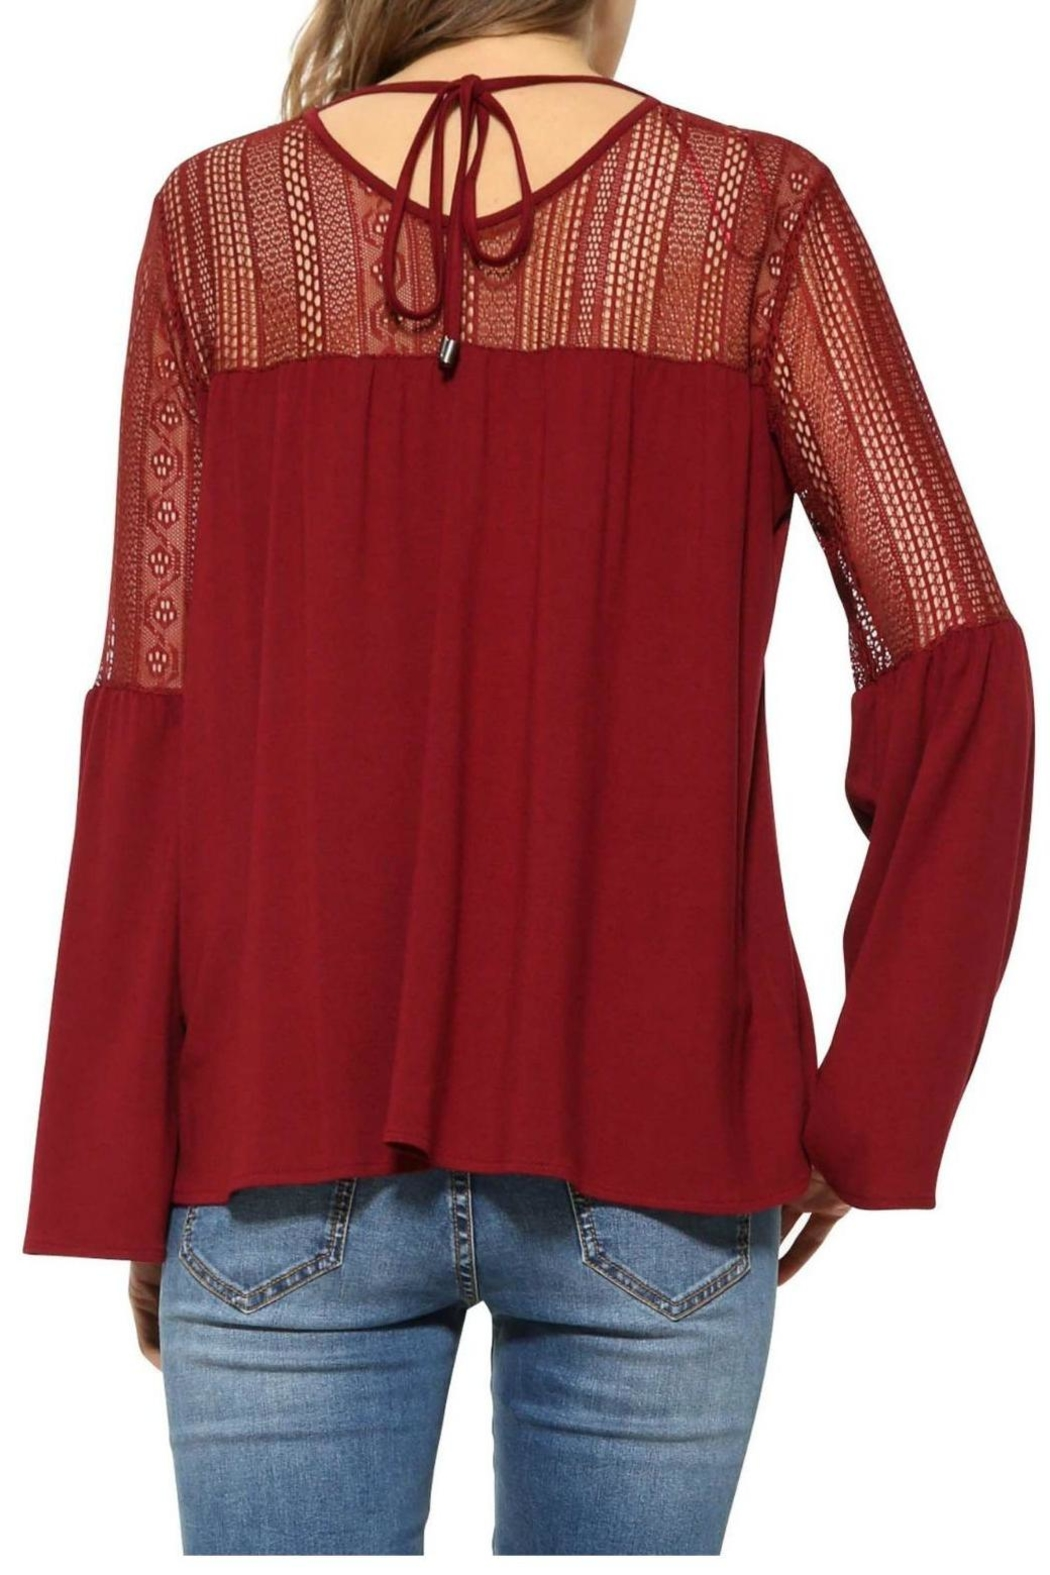 Desigual - Spain Bell Sleeve Blouse - Front Full Image